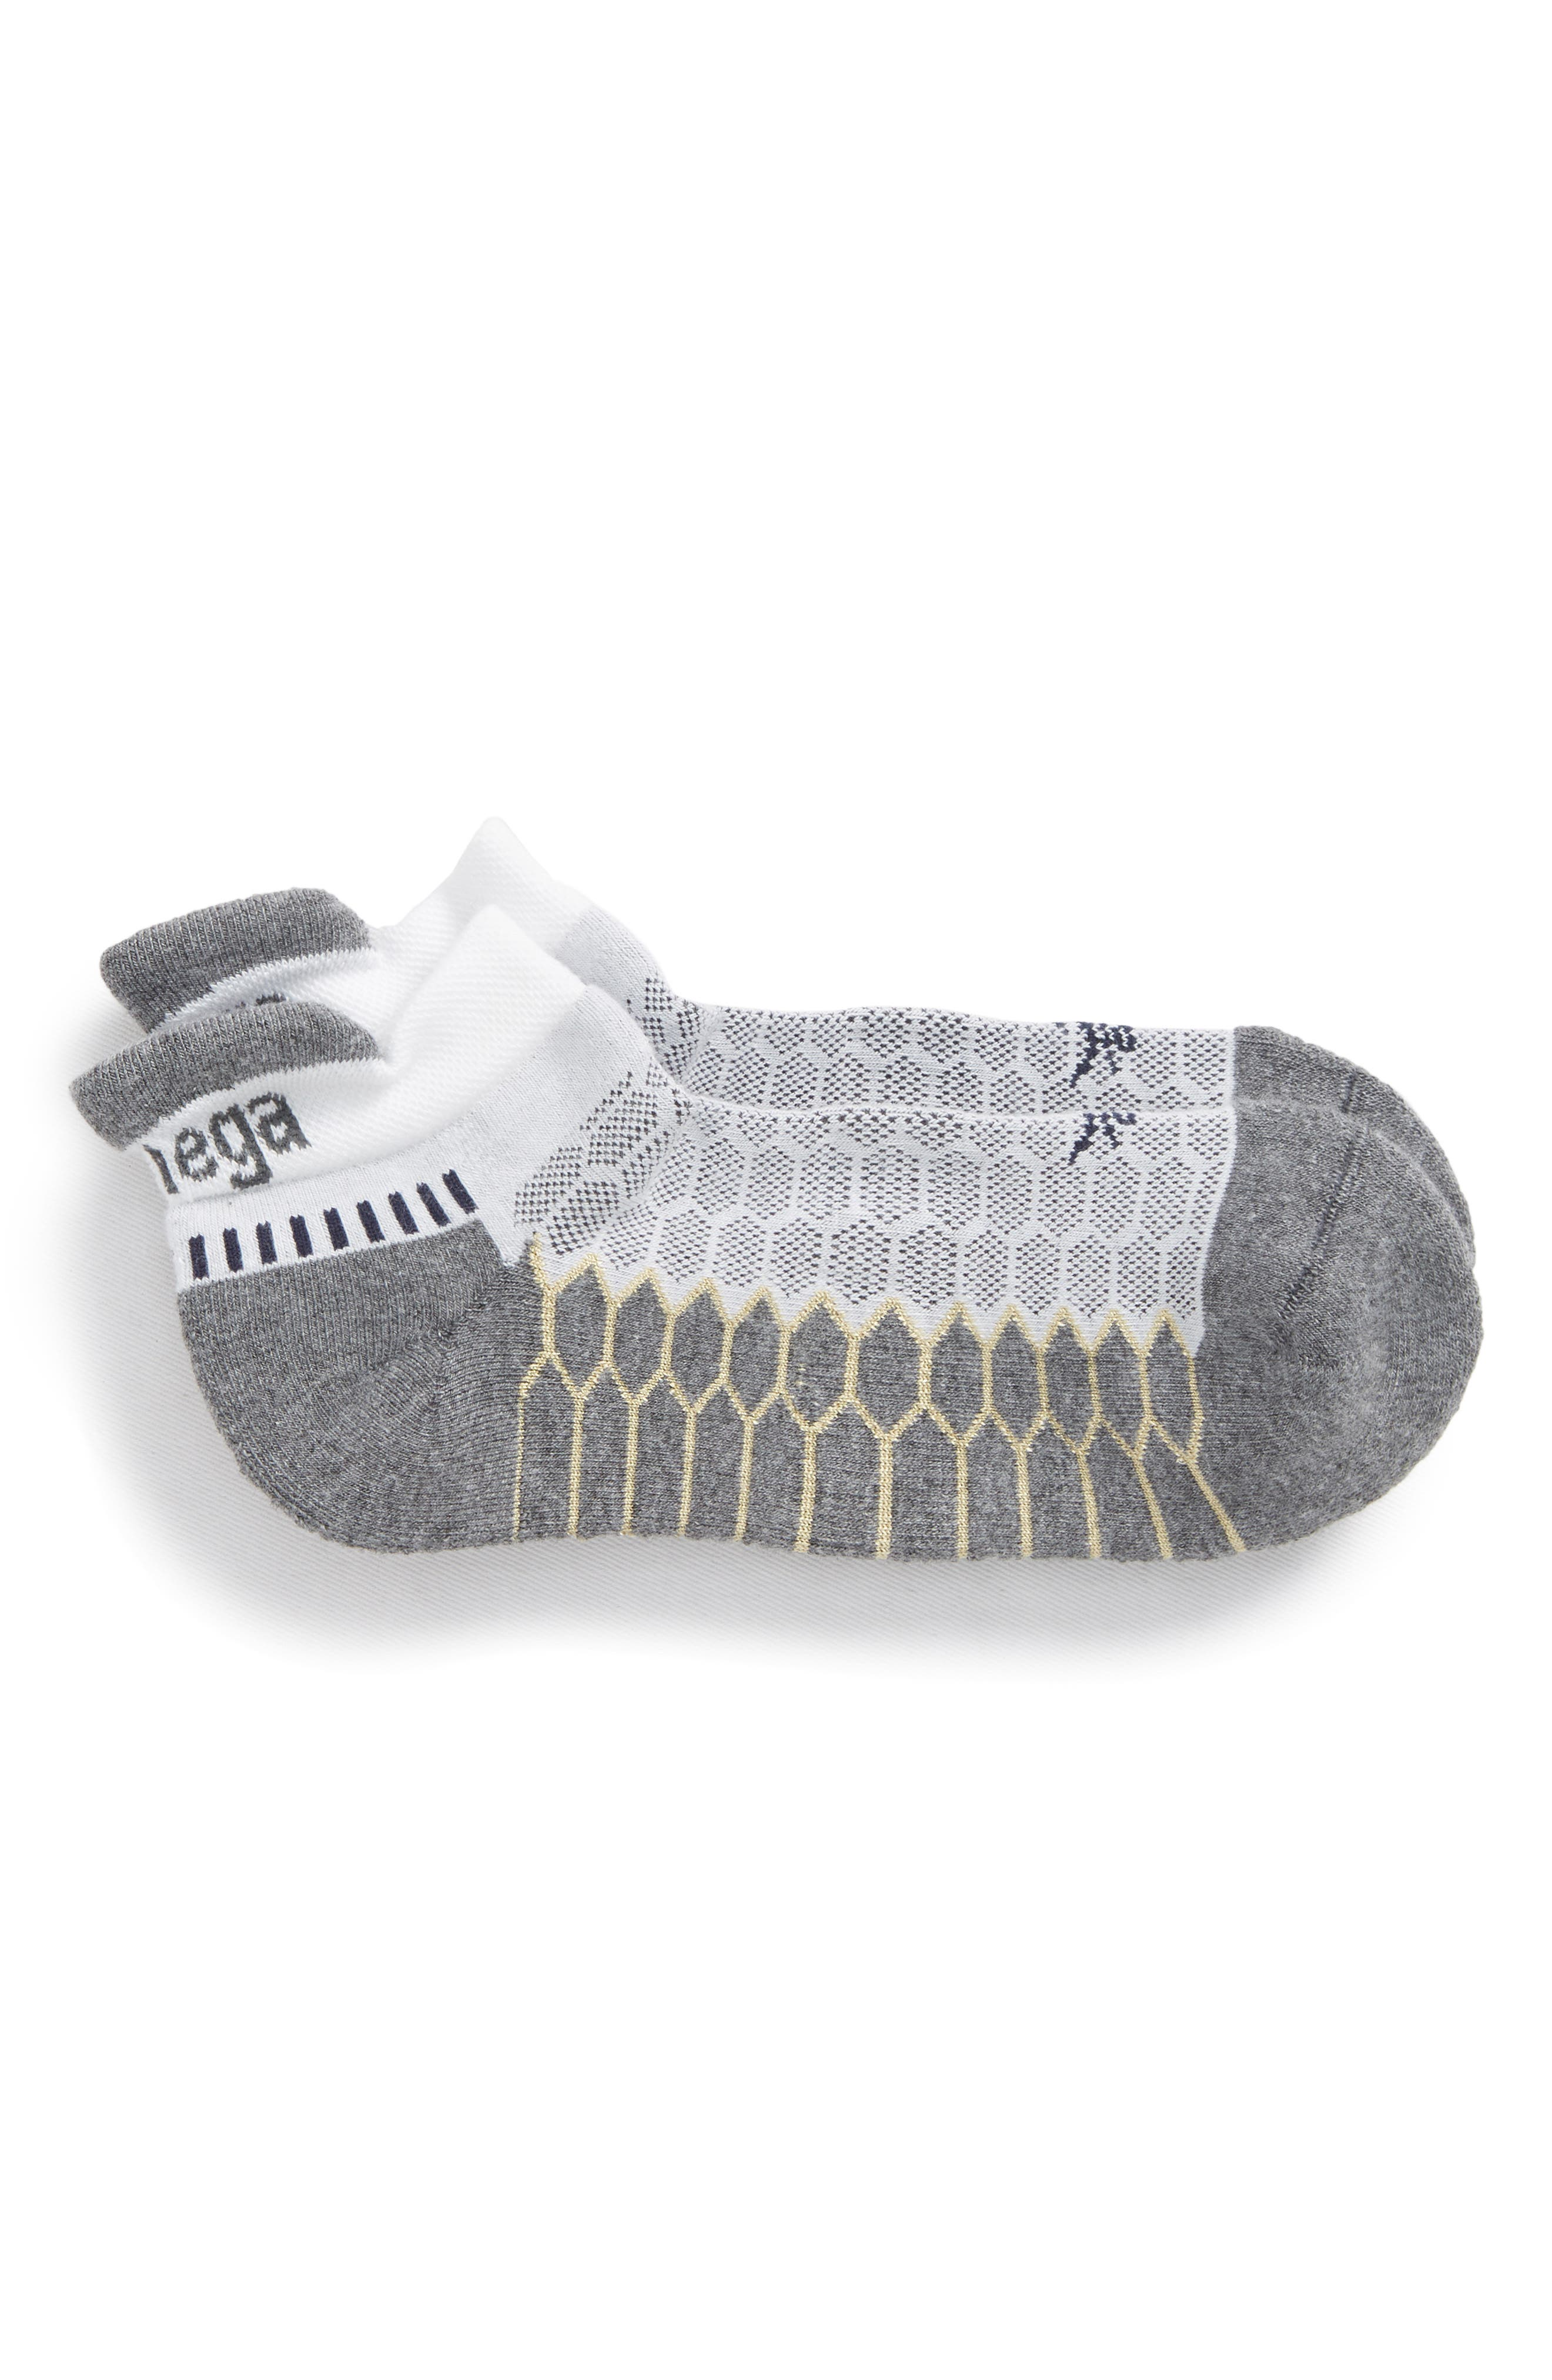 Silver Socks,                         Main,                         color, WHITE/ GREY